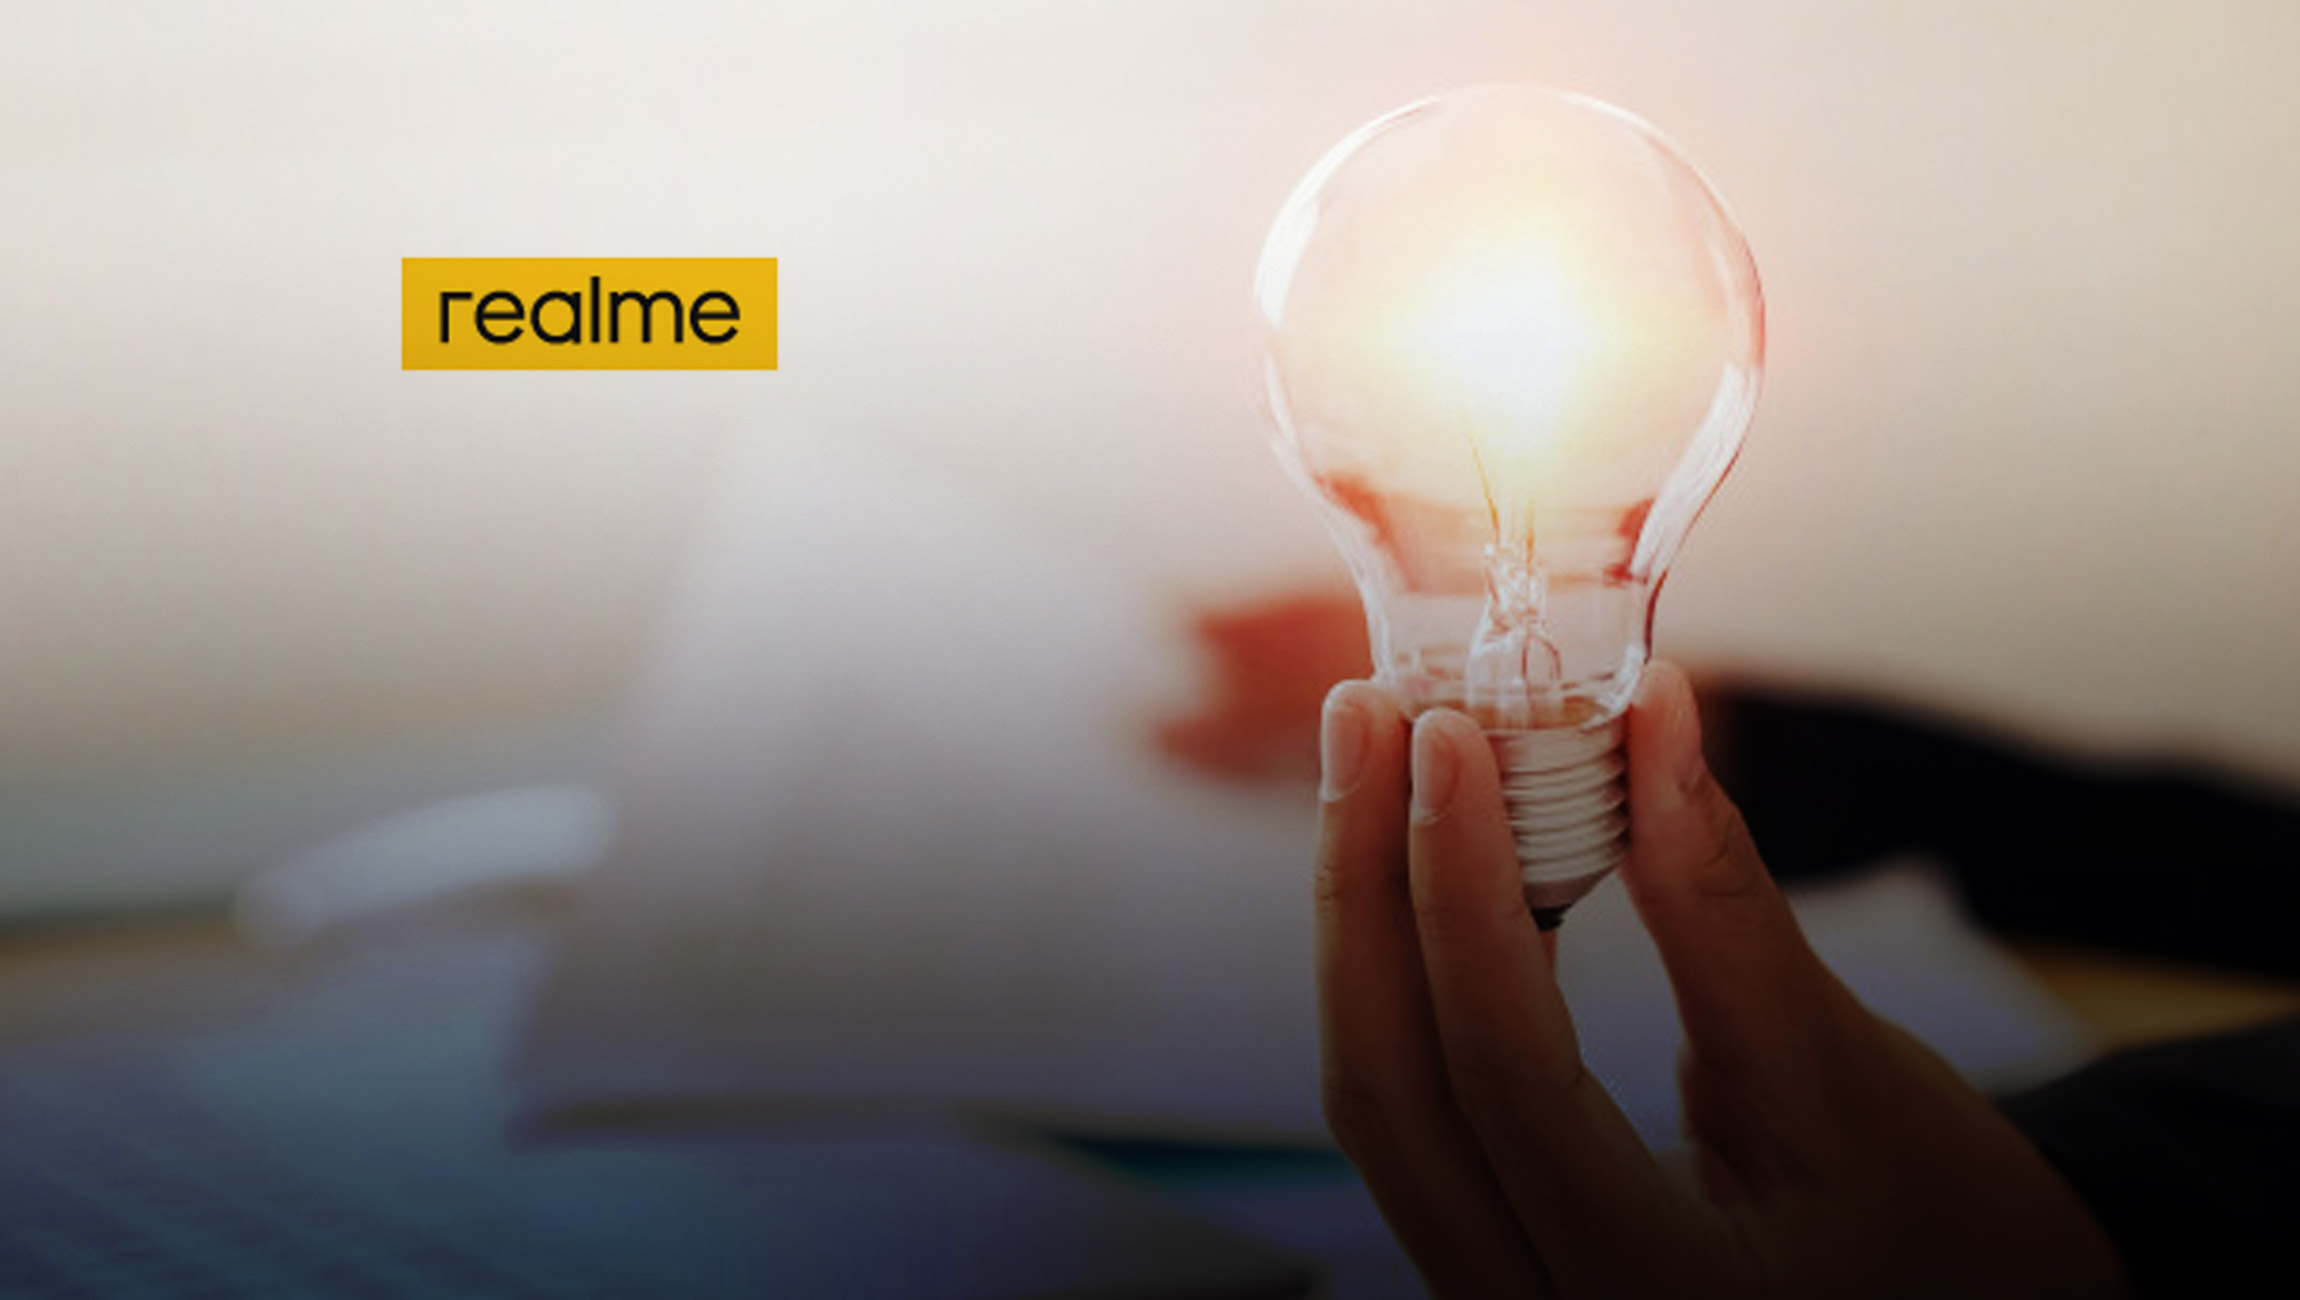 realme's 50M Sales Achievement Attracts Positive Comments From Industry Leaders Anticipating Its Future